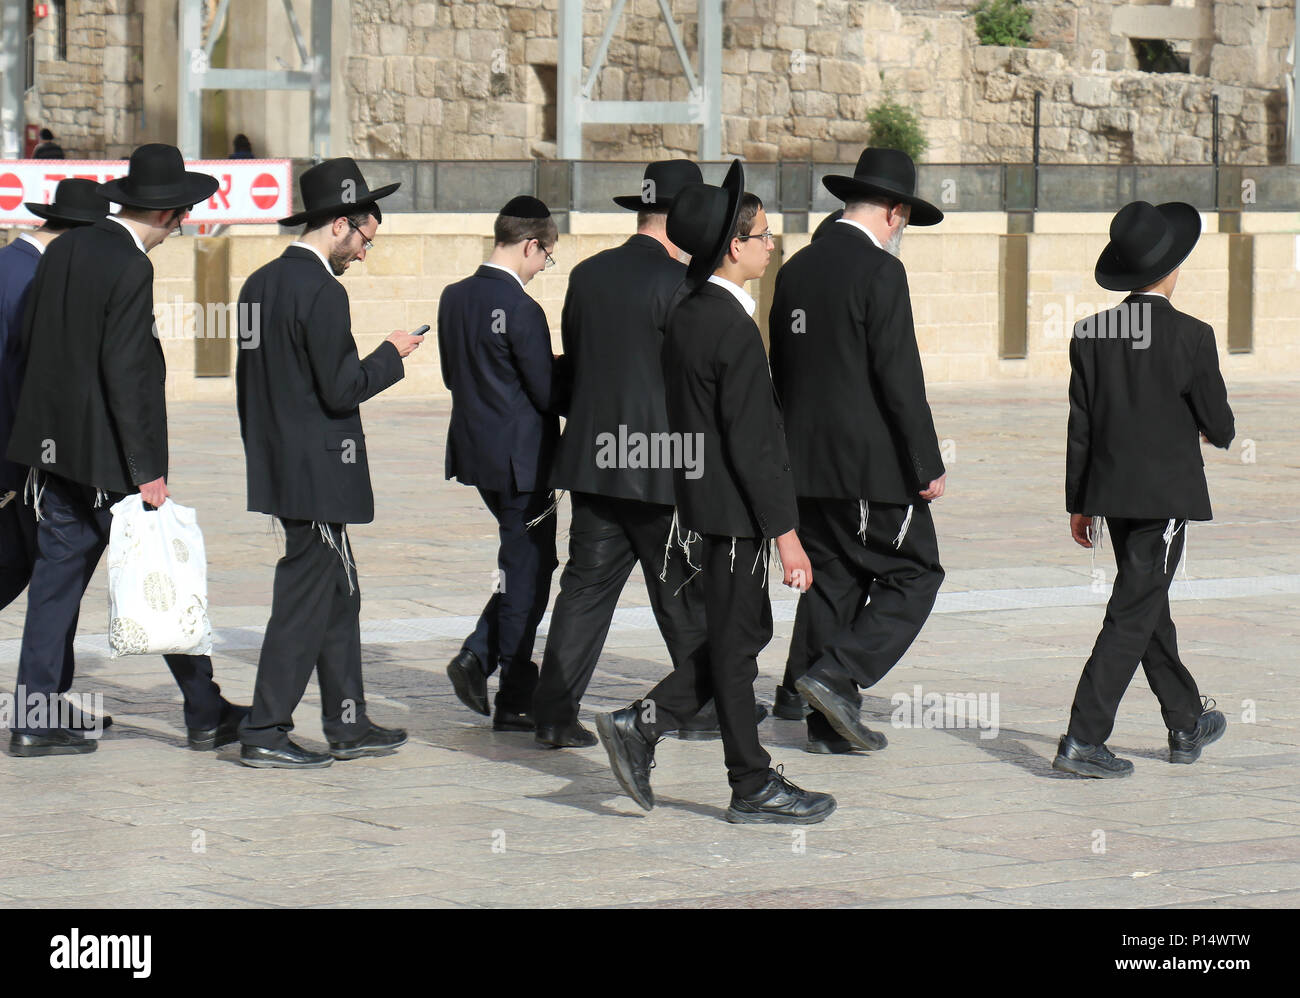 Chabad Lubavitch Stock Photos & Chabad Lubavitch Stock Images - Alamy